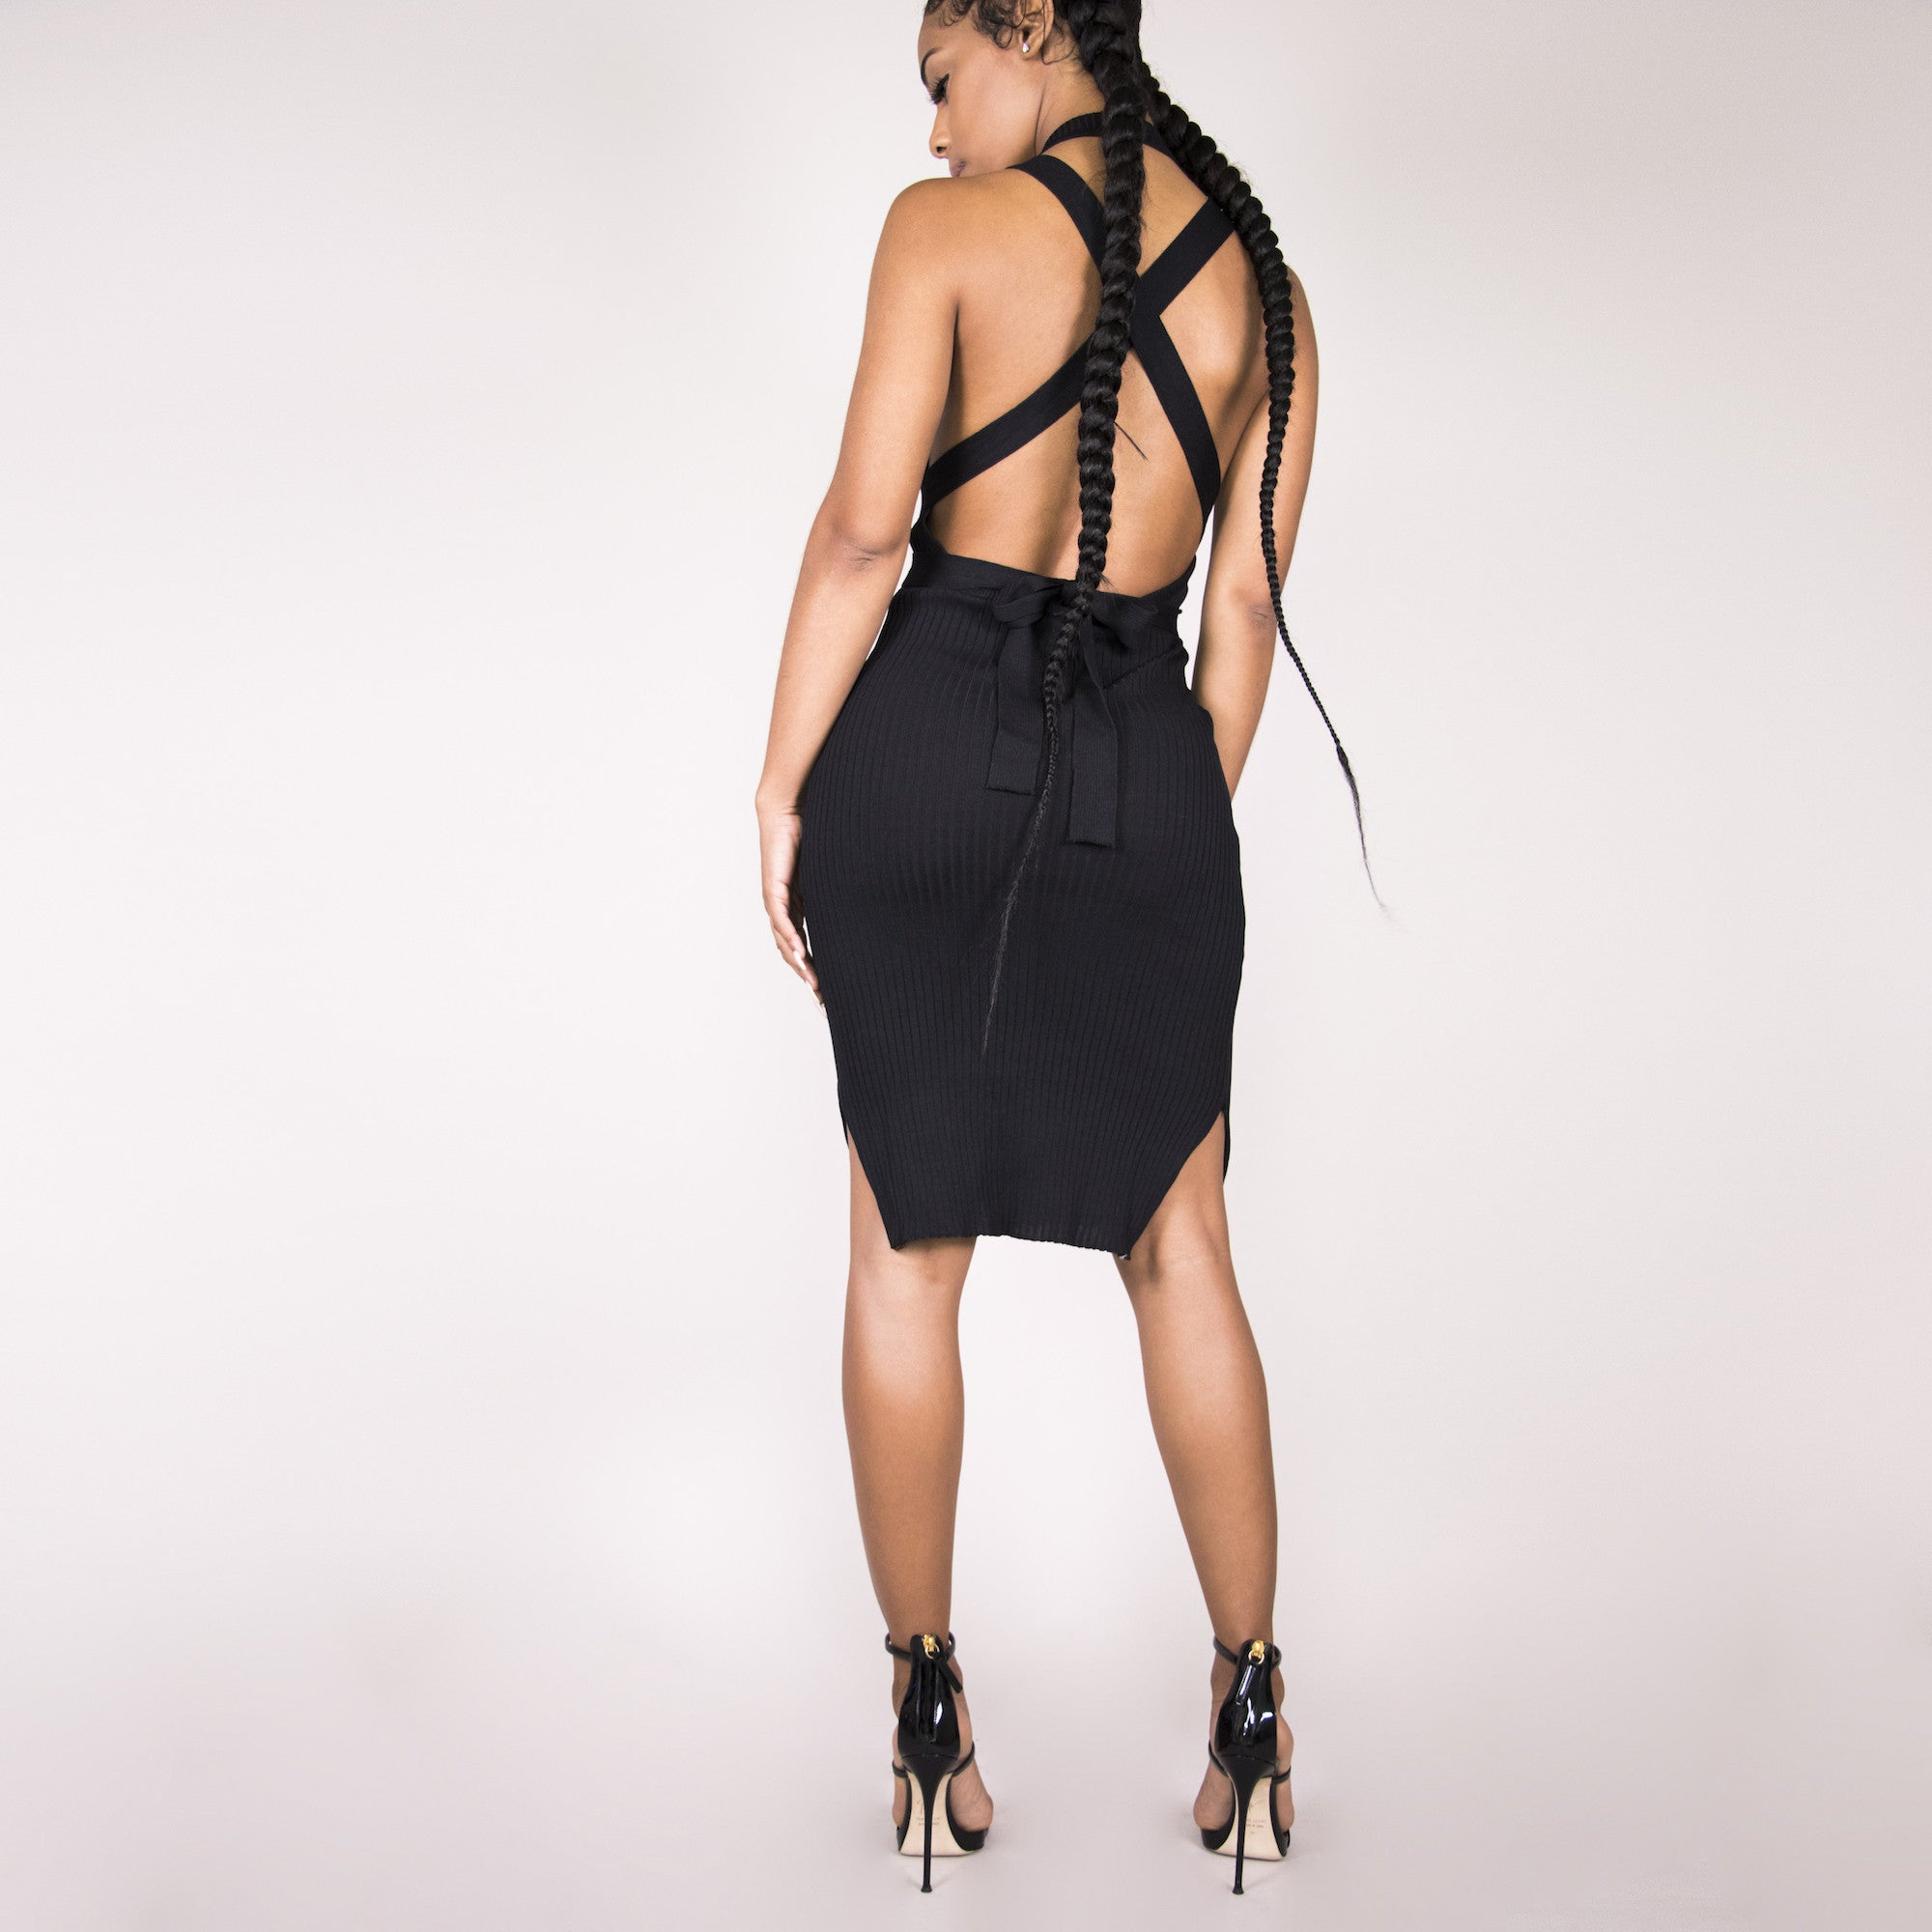 Brittany Bandage Dress - Black | Raregal